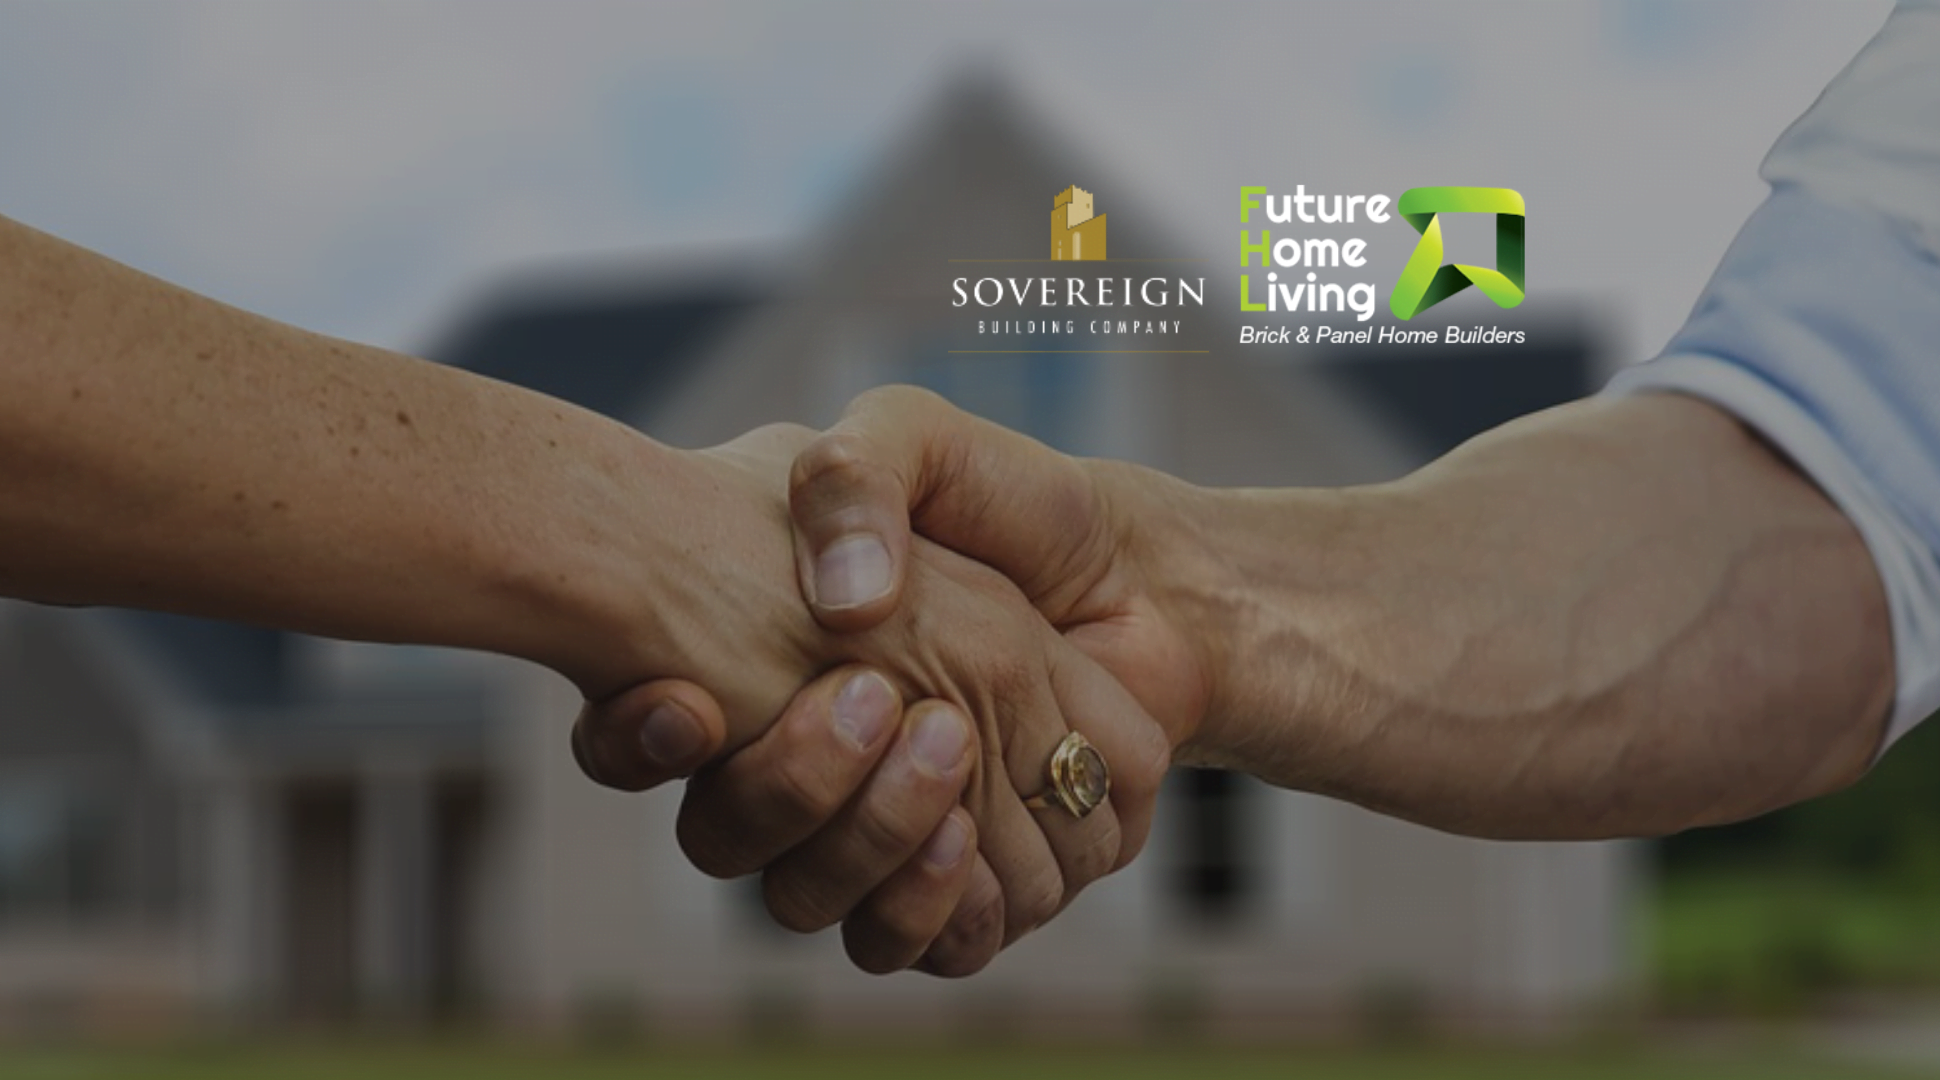 Sovereign & Future Home Living Have Now Merged